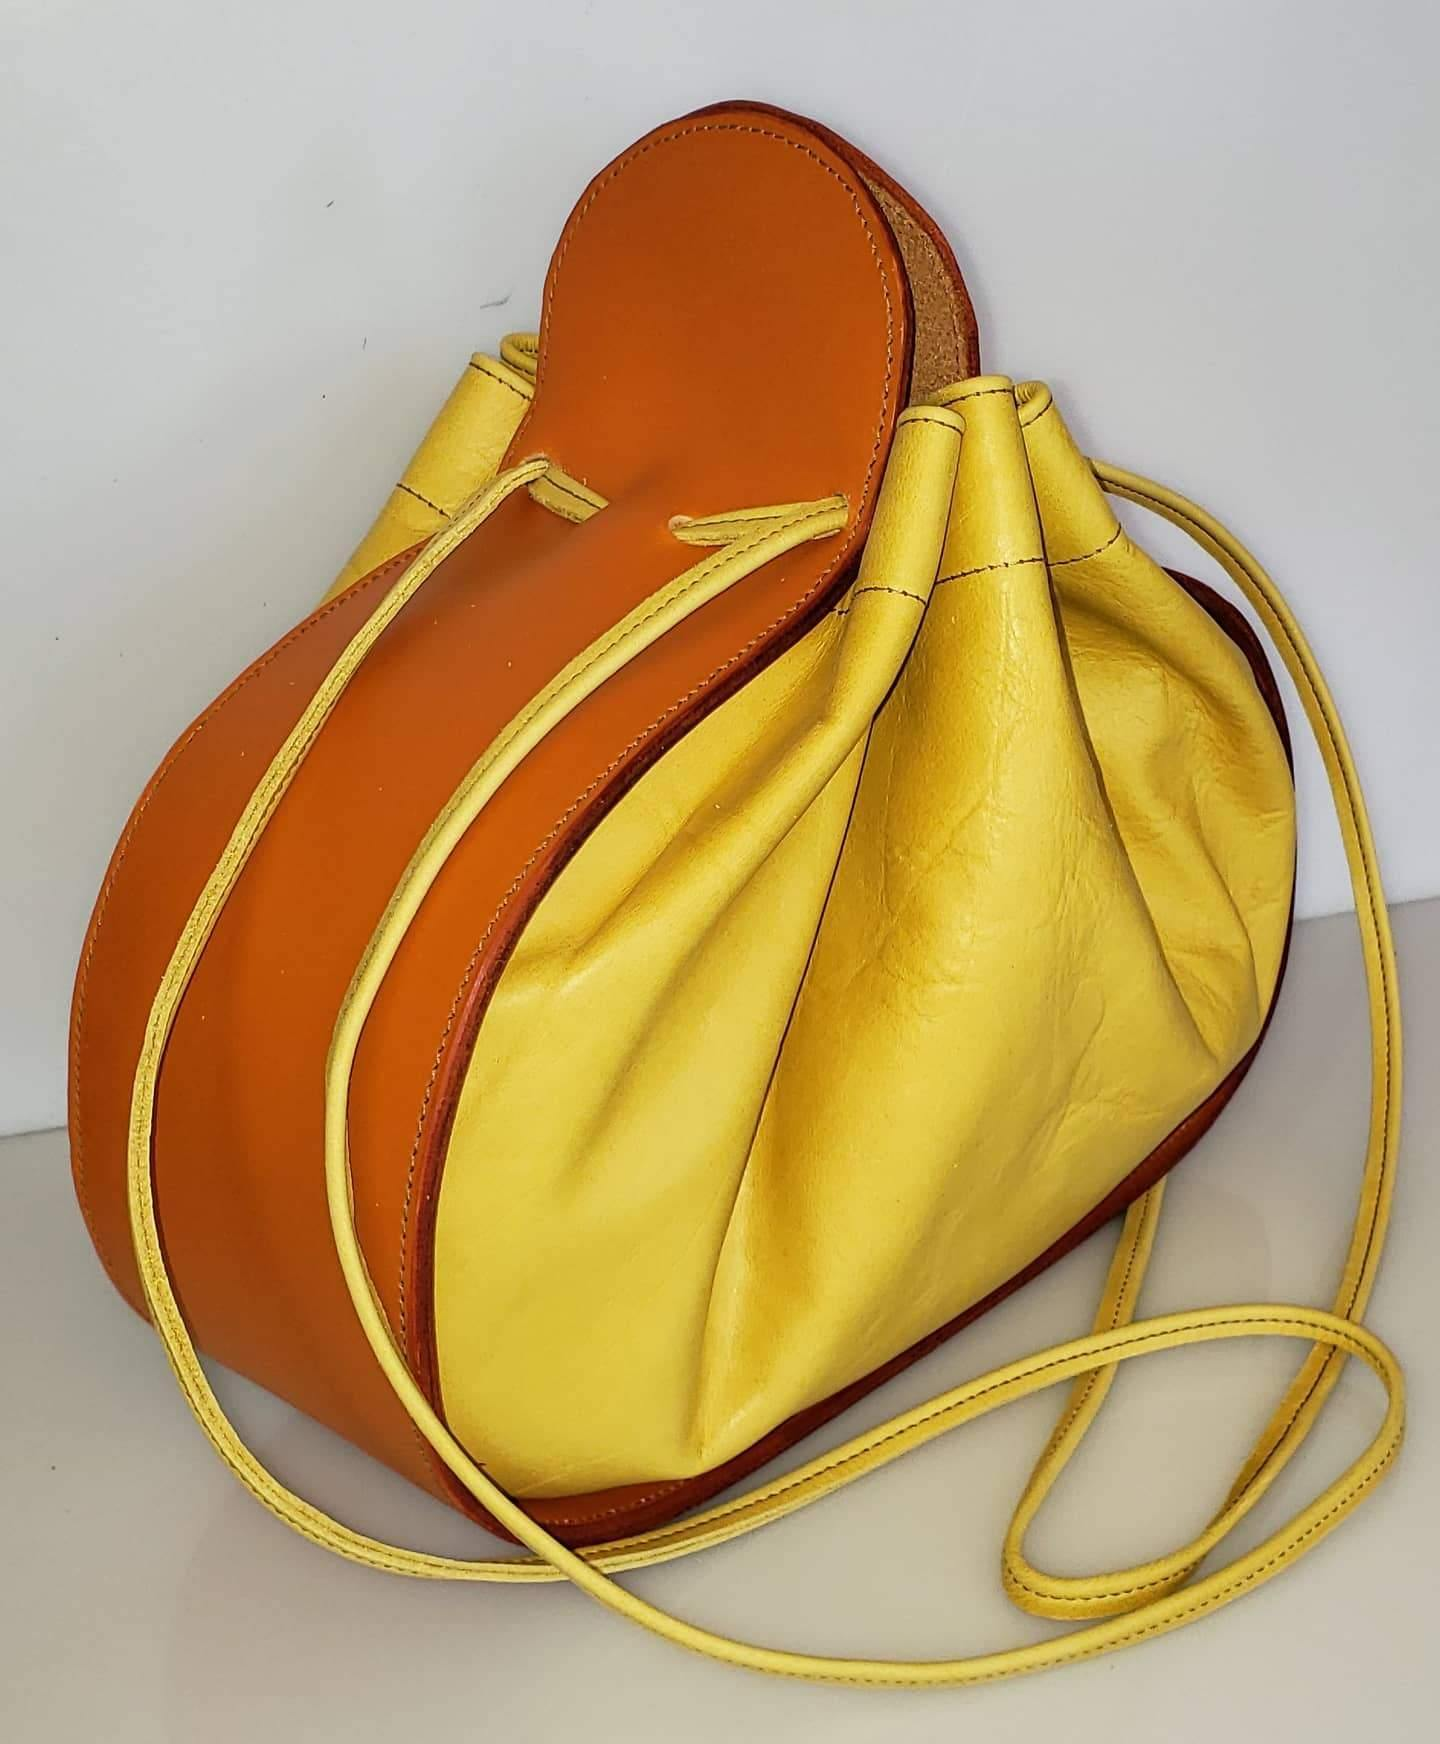 Ashley Drawstring Bag Orange/Yello